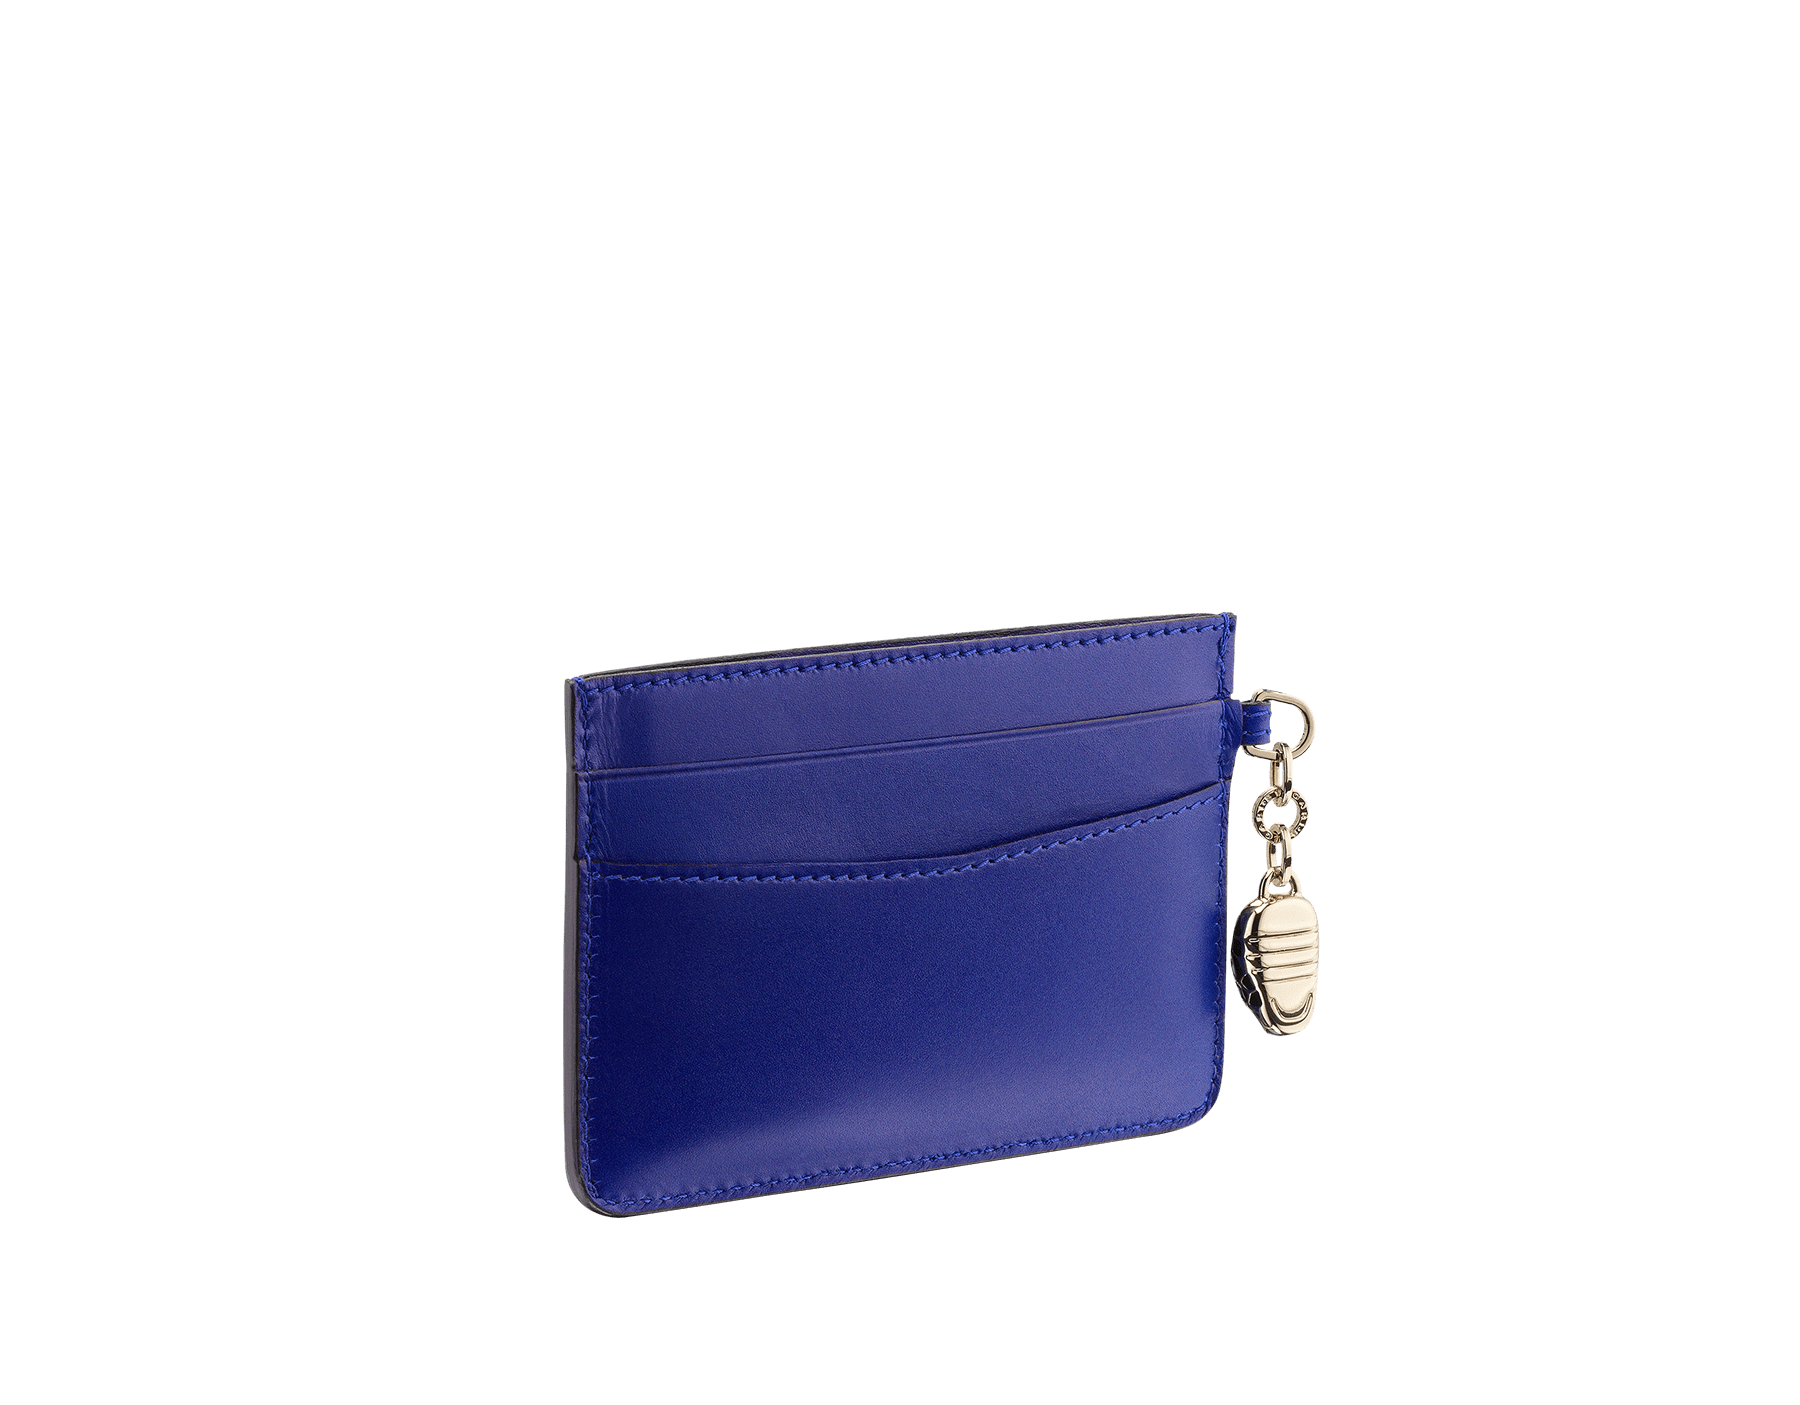 Credit card holder in royal sapphire and teal topaz calf leather. Serpenti charm in black and white enamel with green malachite enamel eyes and Bulgari logo in metal characters. Four credit card slots and one compartment. Also available in other colours. 10,5 x 7,5 cm. - 4.1. x 3.0'' 282021 image 1